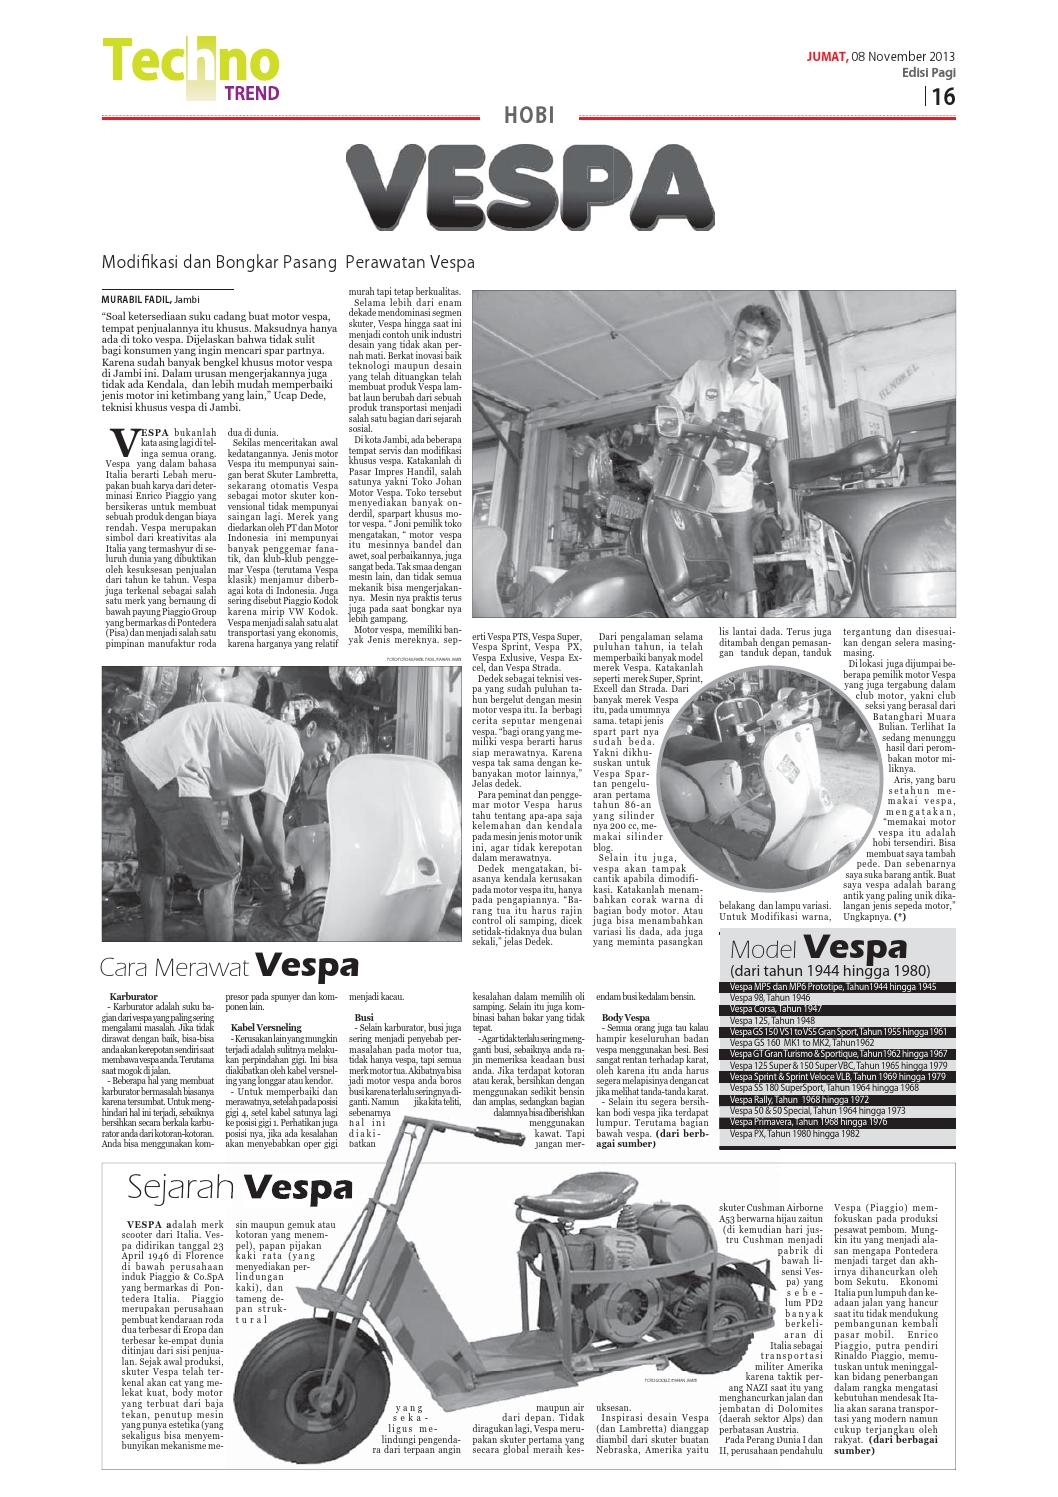 Modifikasi vespa super apps directories - Harian Jambi Edisi Jumat 8 November 2013 Pagi By Harian Jambi Issuu